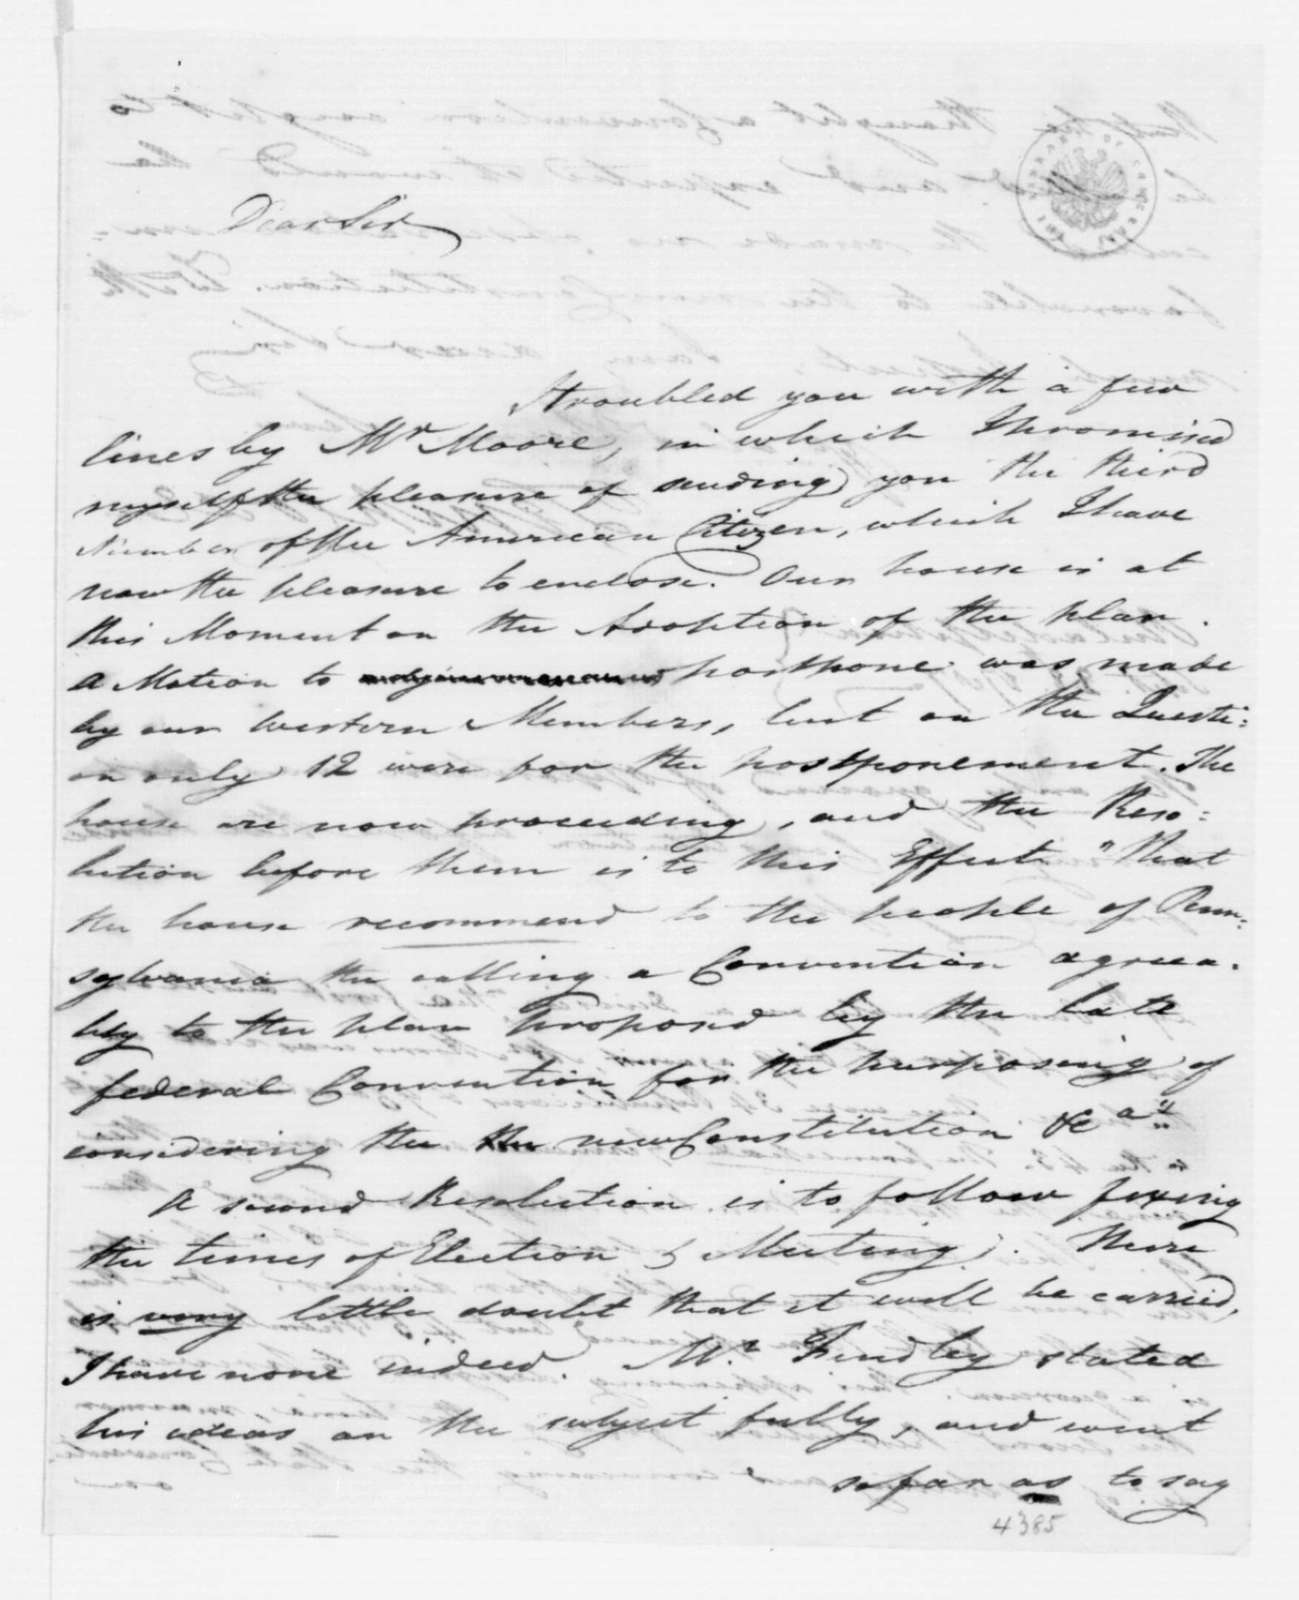 Tench Coxe to James Madison, September 28, 1787.